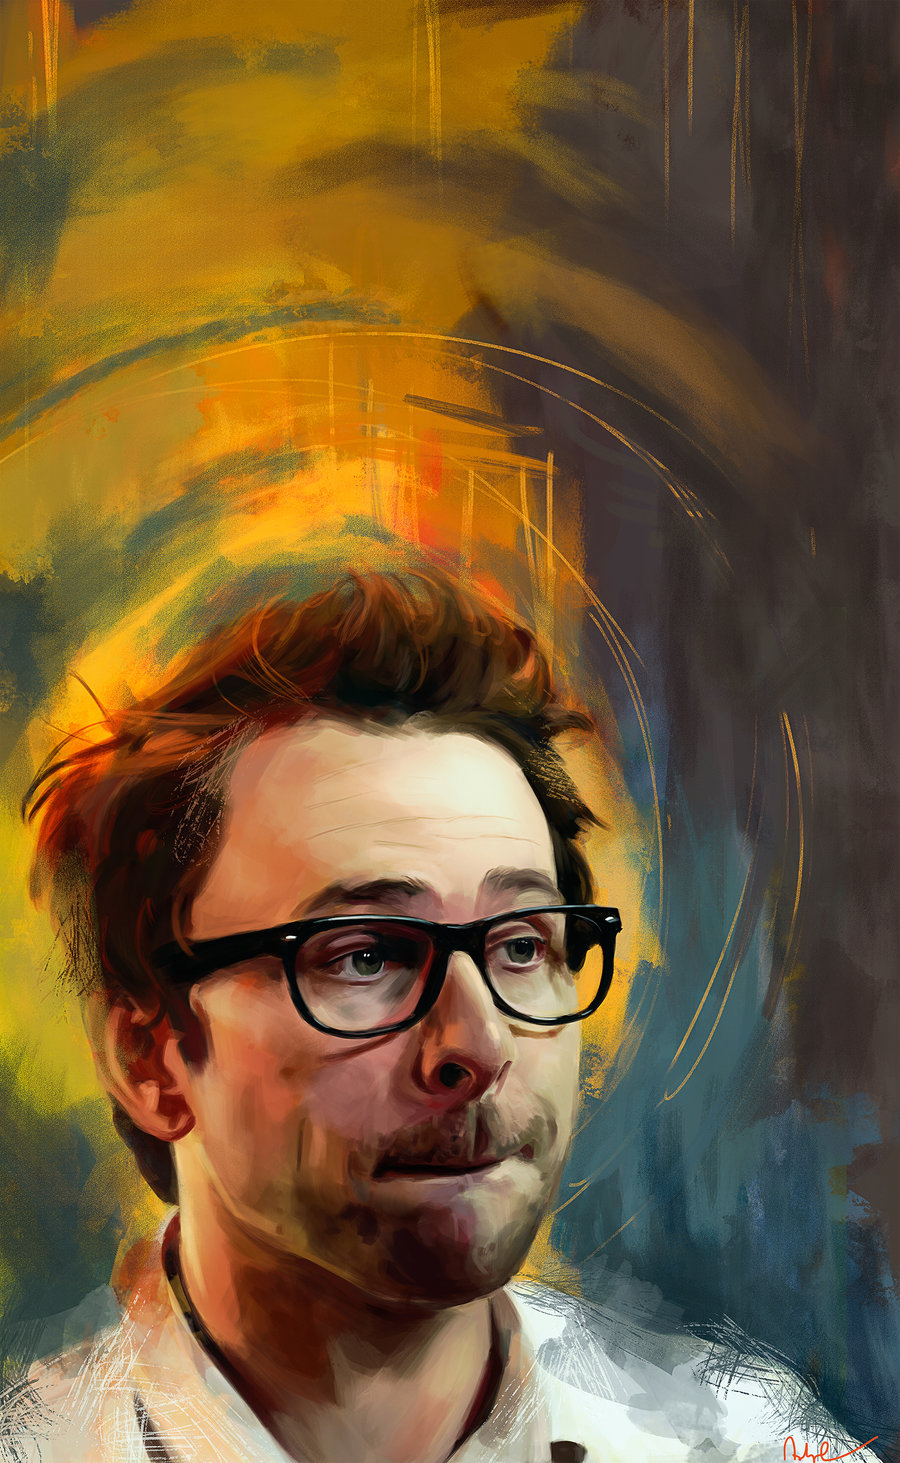 Les personnages de films et séries en digital painting de Namecchan